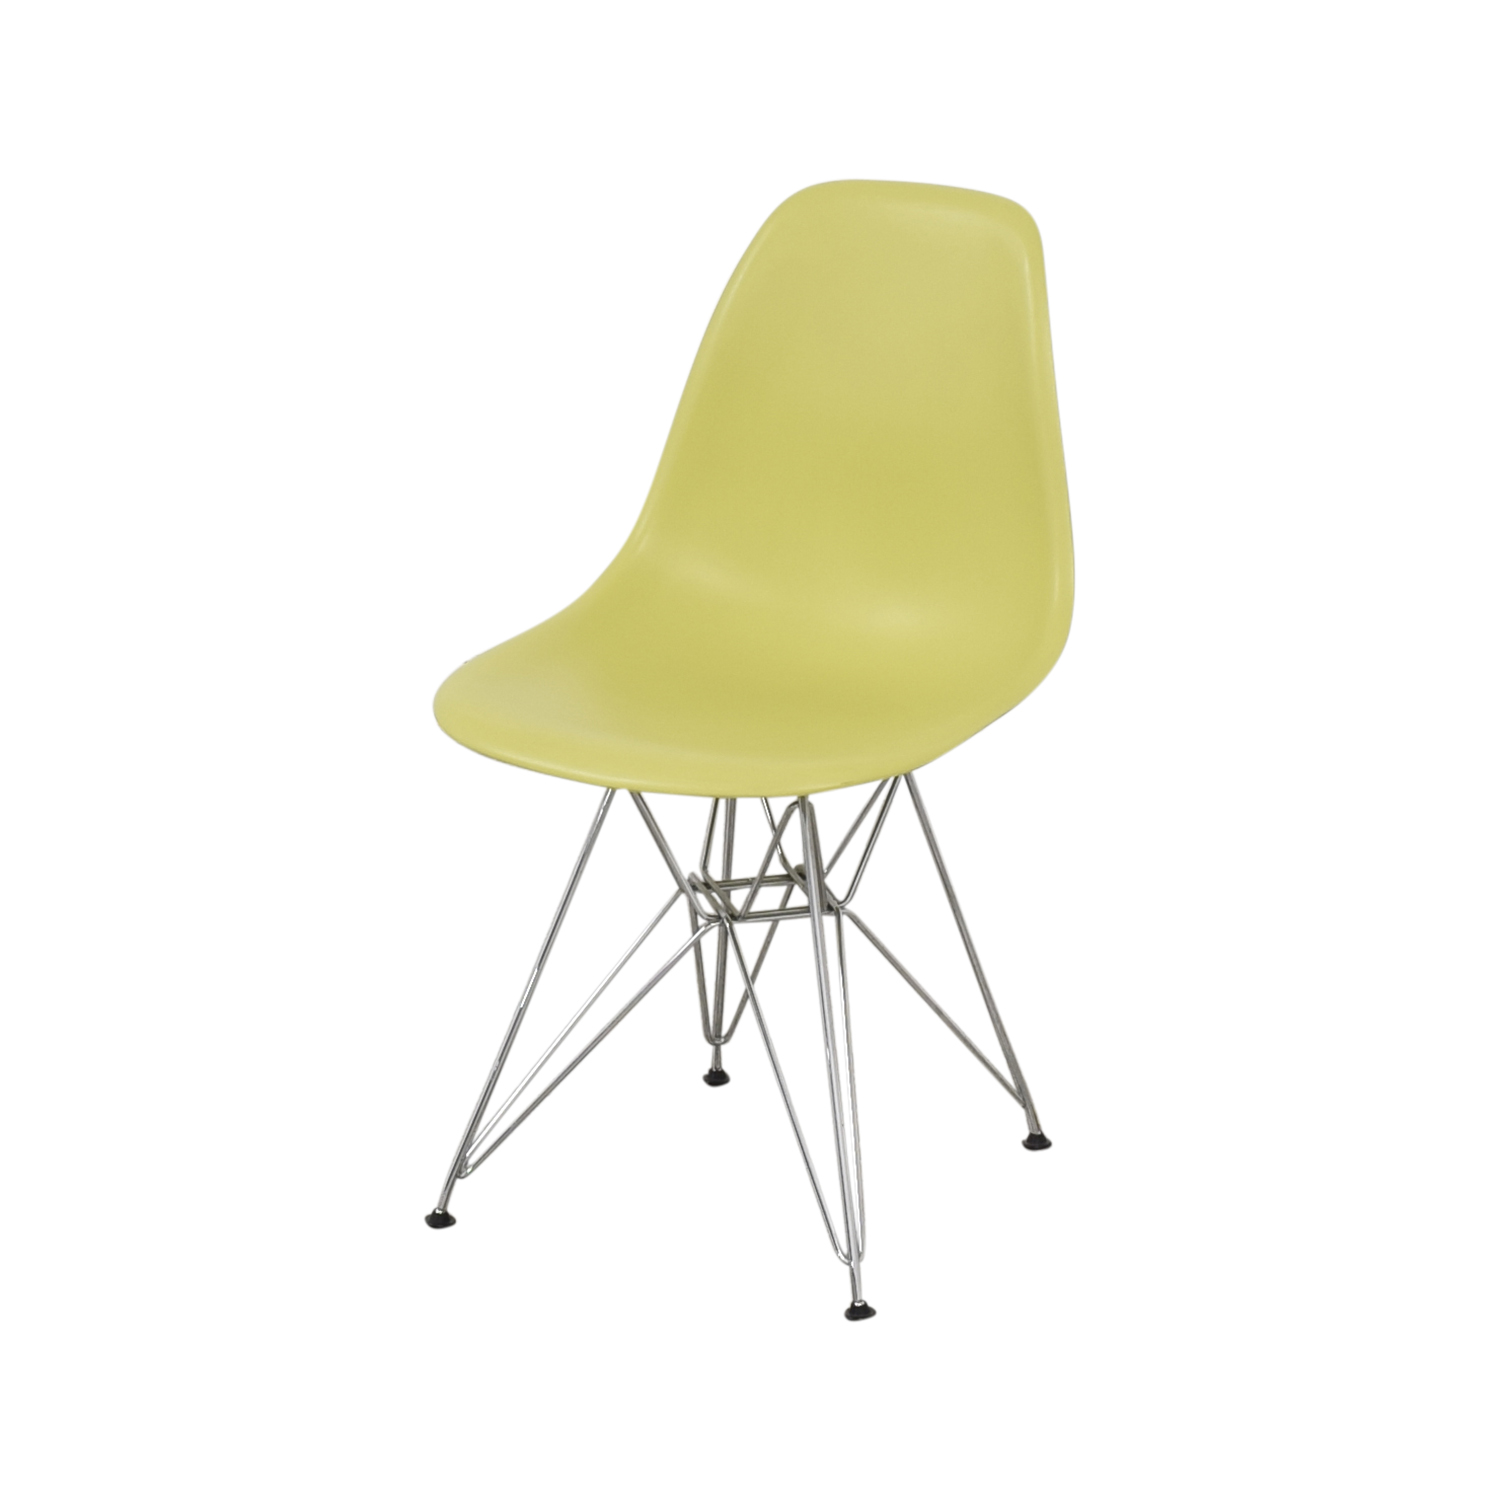 Vitra Eames Molded Plastic Wire-Base Side Chairs Vitra